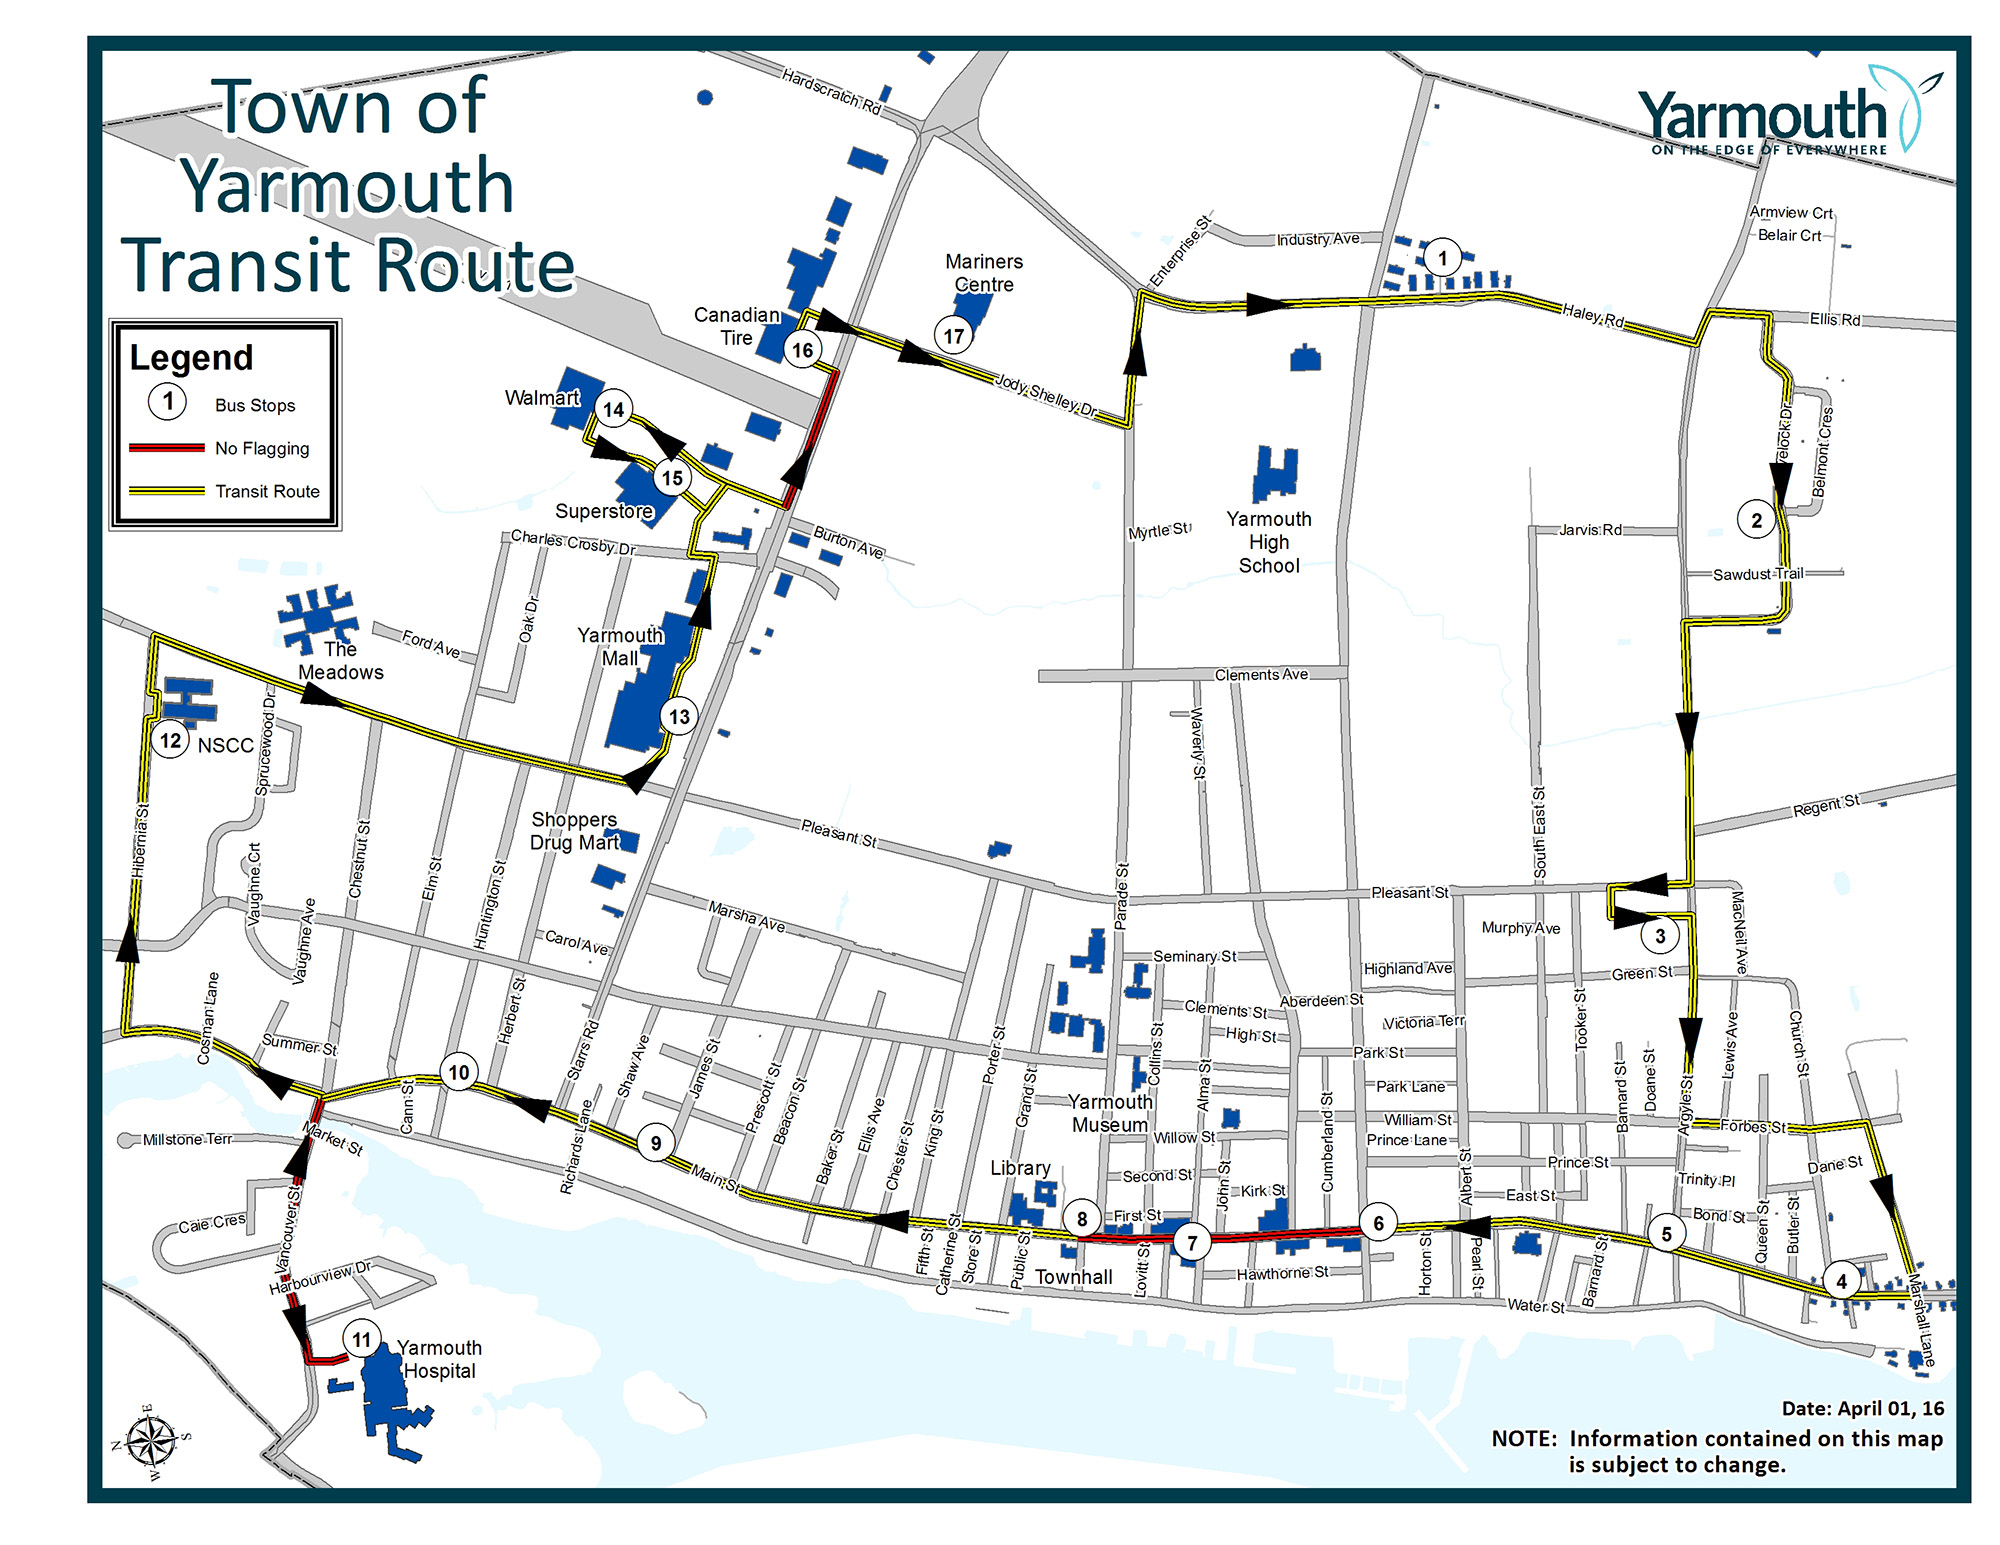 Town of Yarmouth Route Schedule